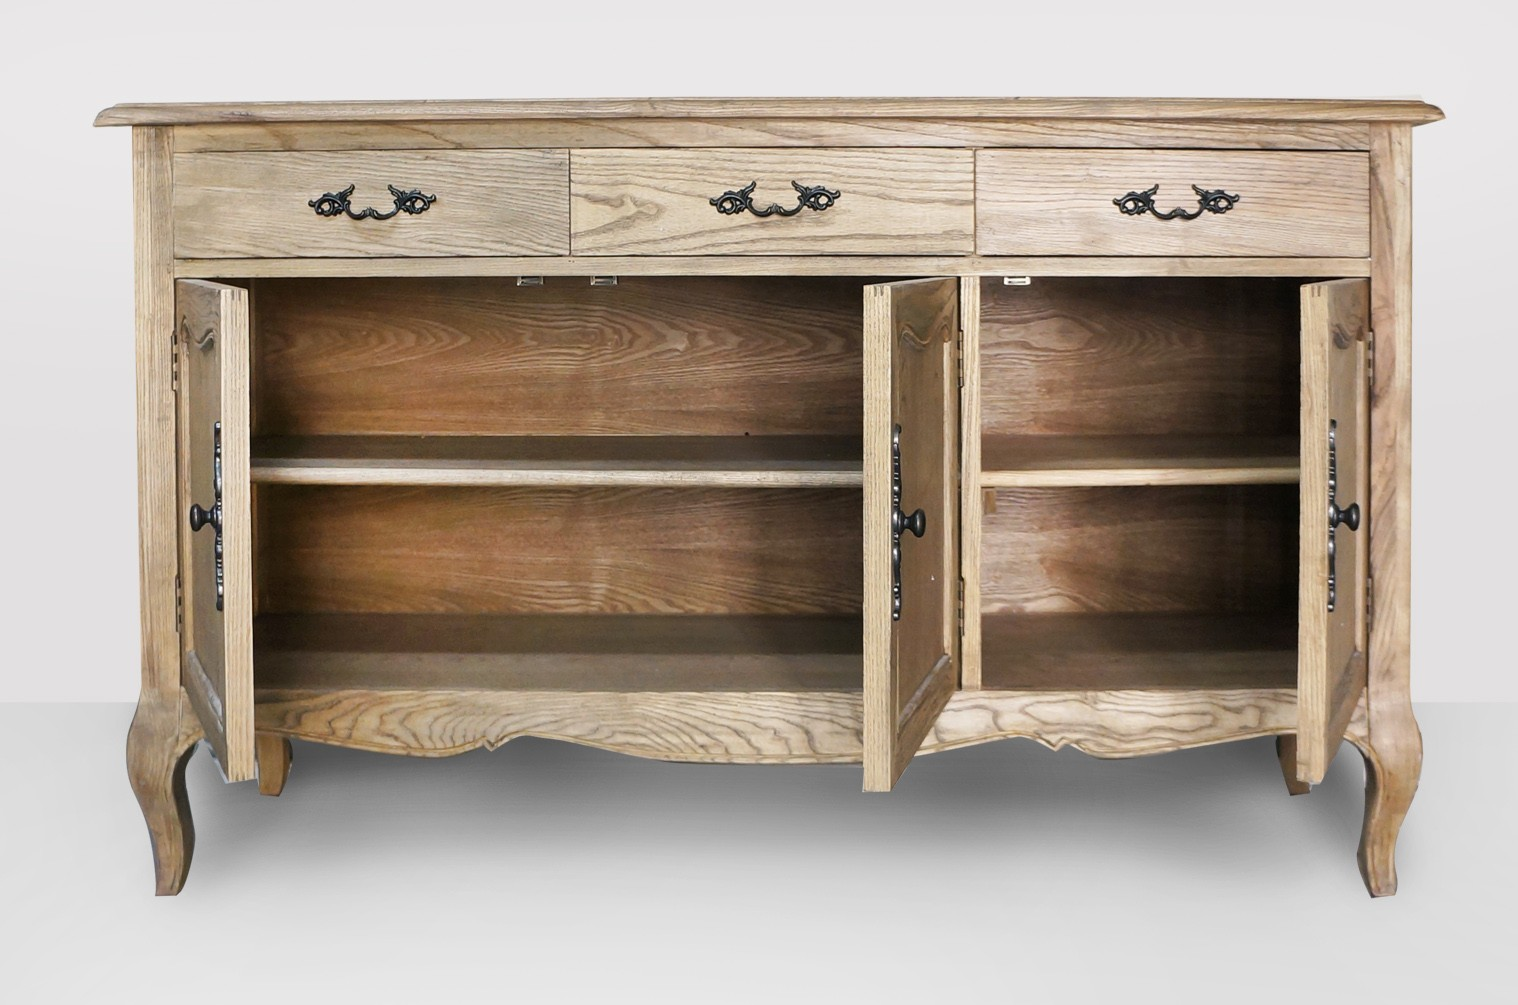 La joie living is one of the most comprehensive ranges of french provincial furniture inspired natural oak french furniture available today